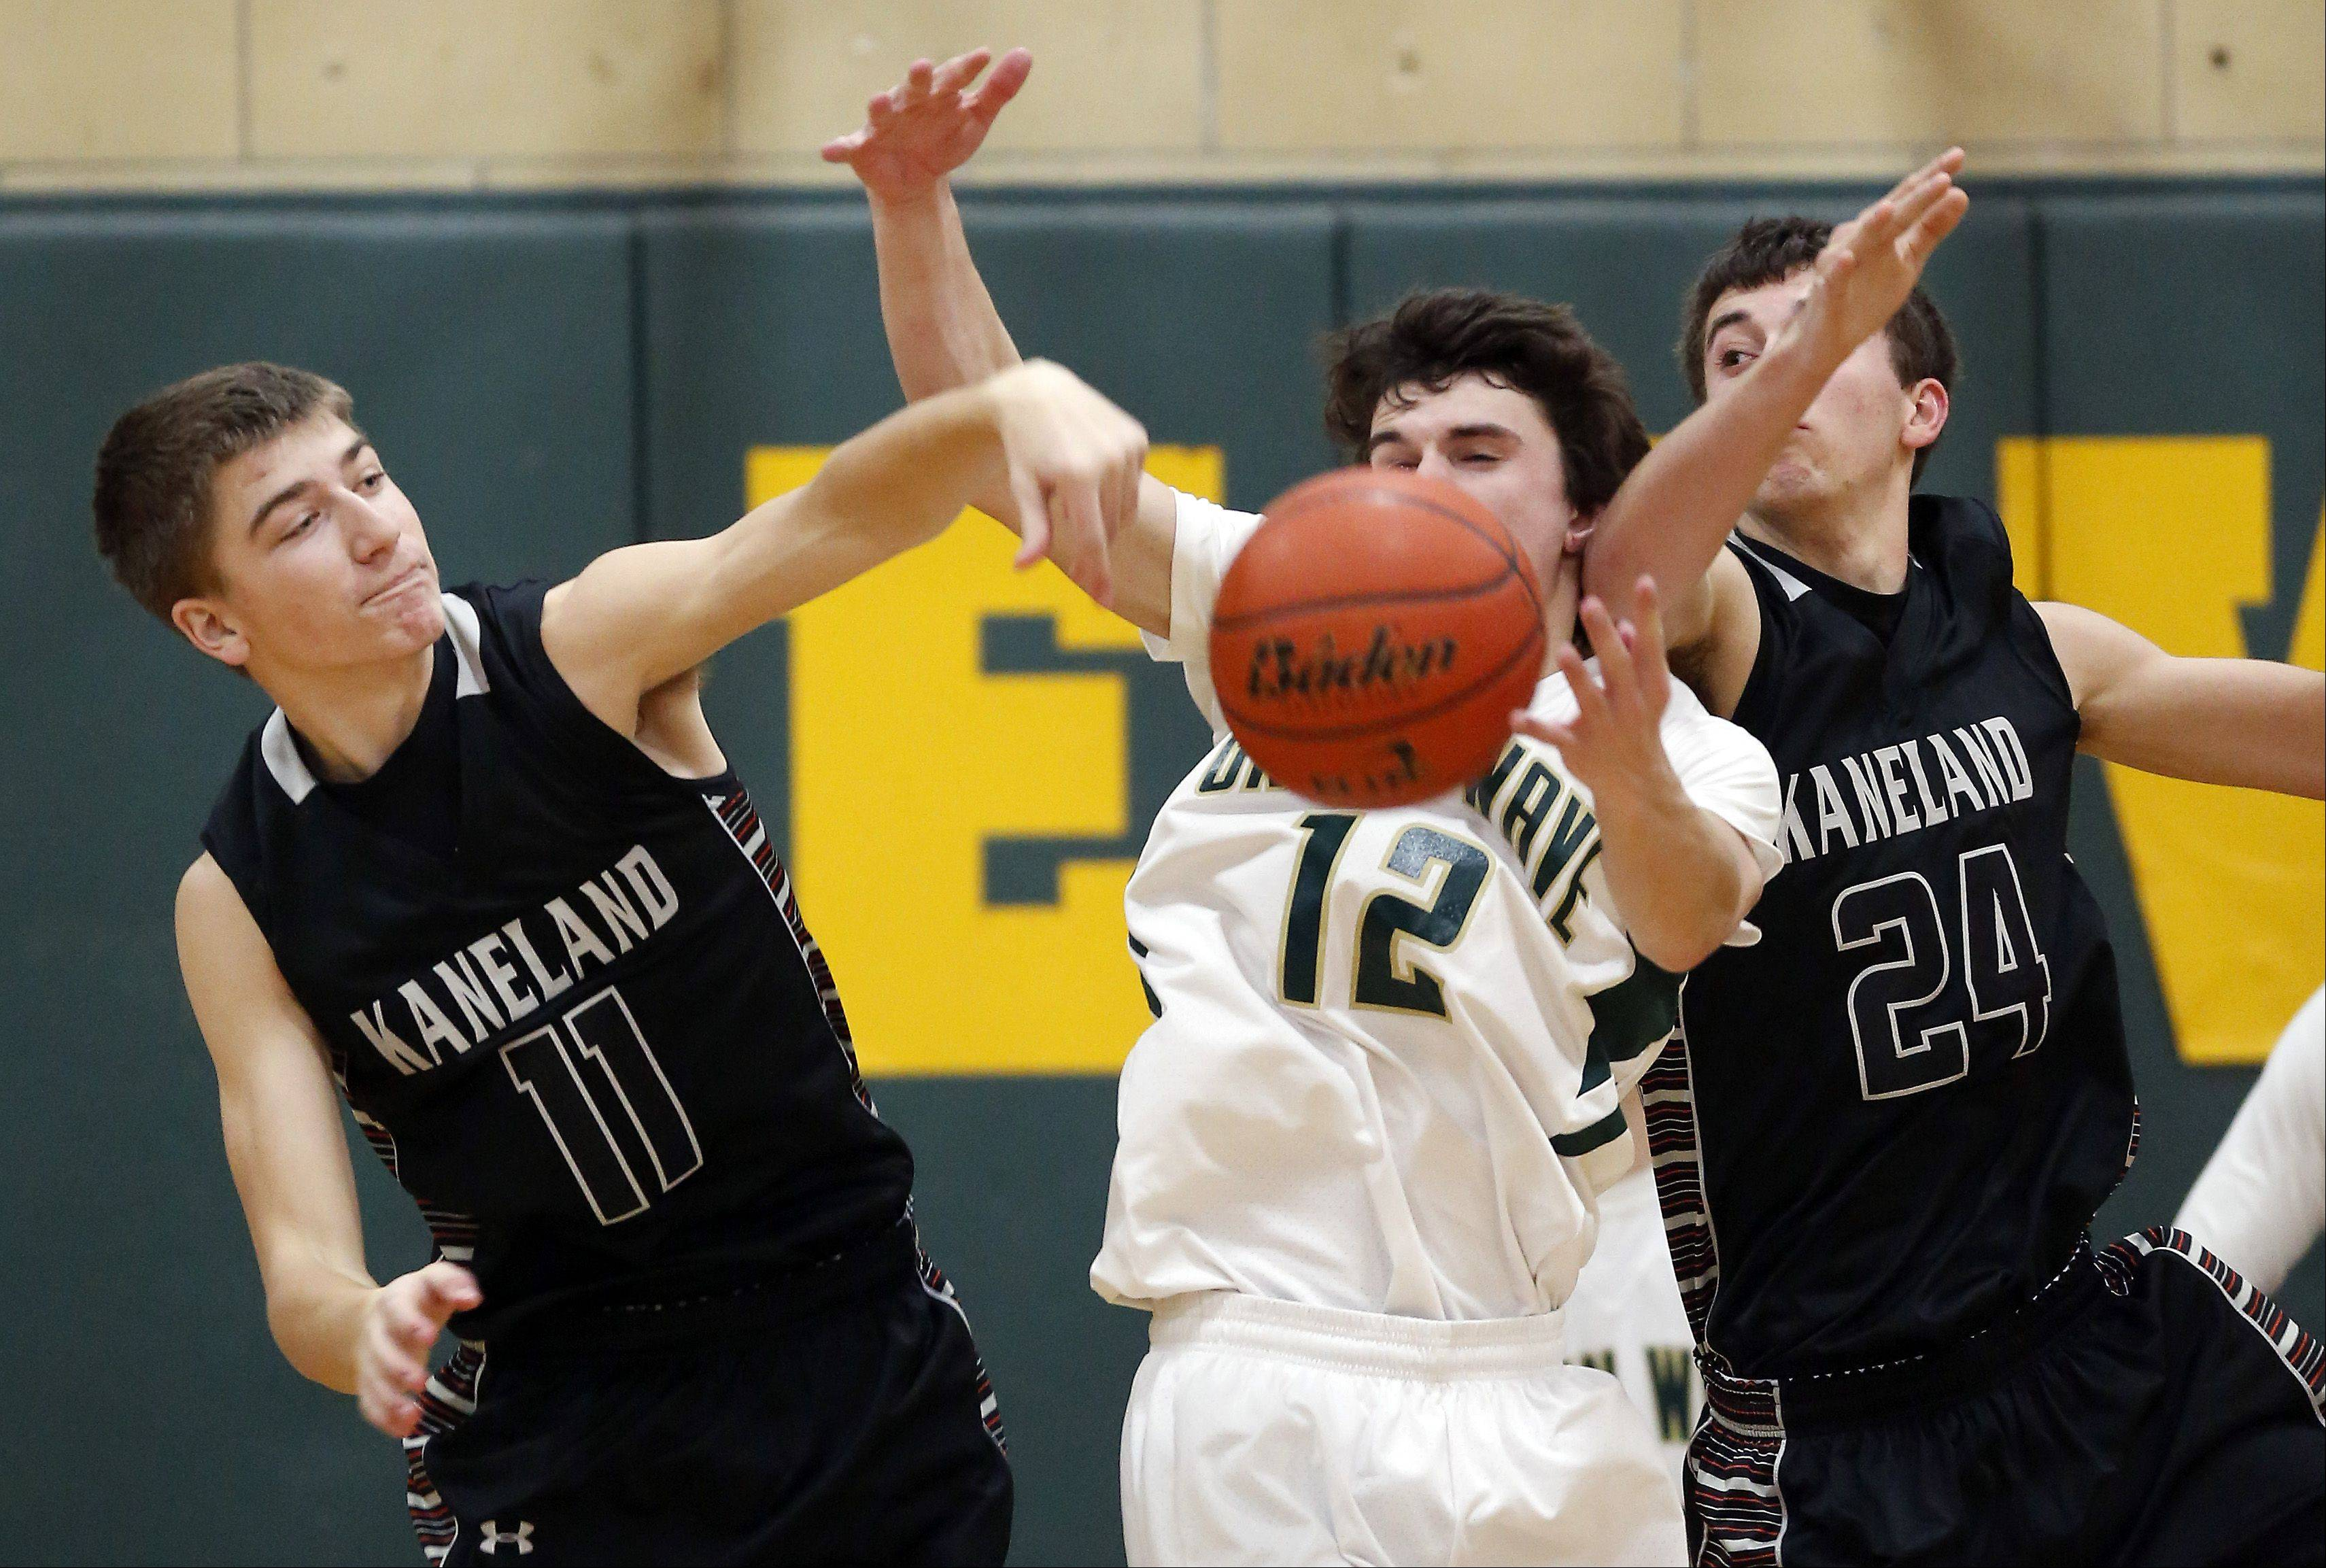 The Knights' Steven Limbrunner and Ryan David battle the Green Wave's Joseph French.